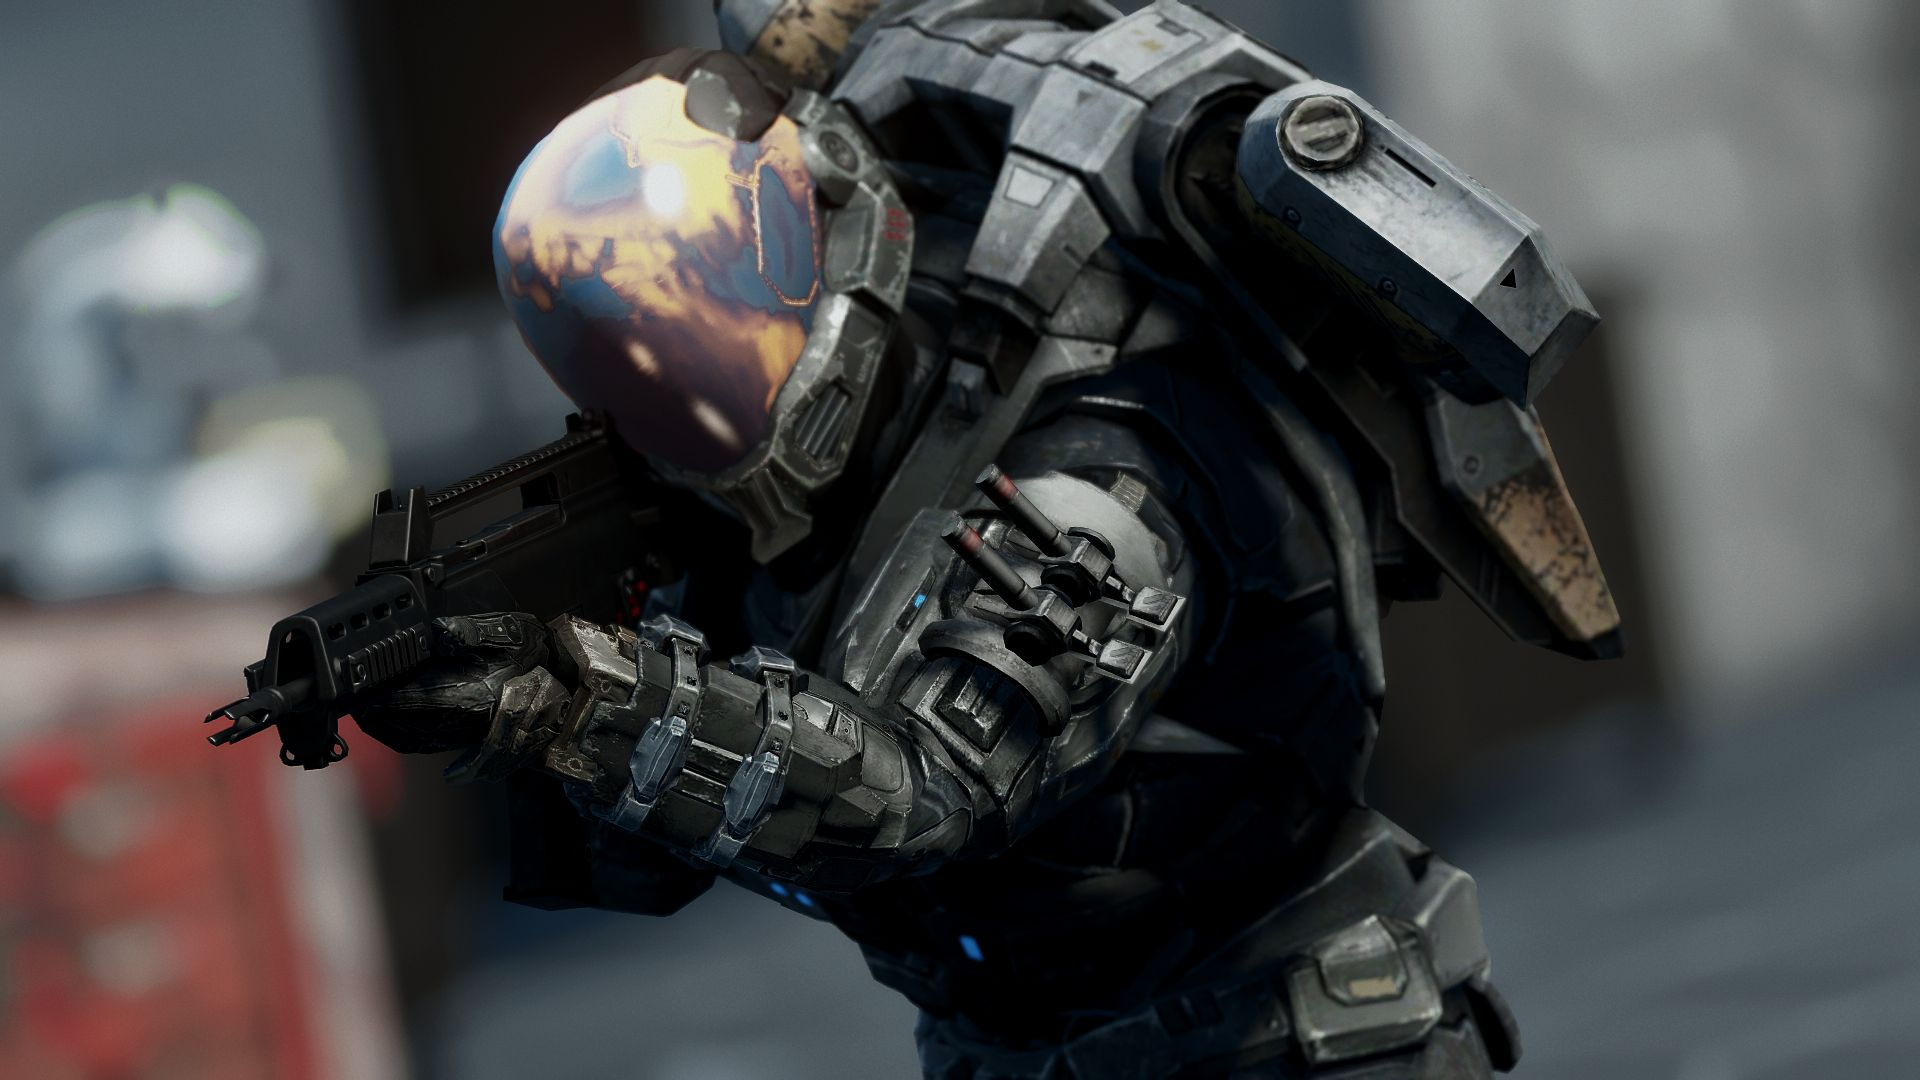 /fallout-4-halo-armor-mods-from-the-odsts-to-noble-team-lb1o33ob feature image